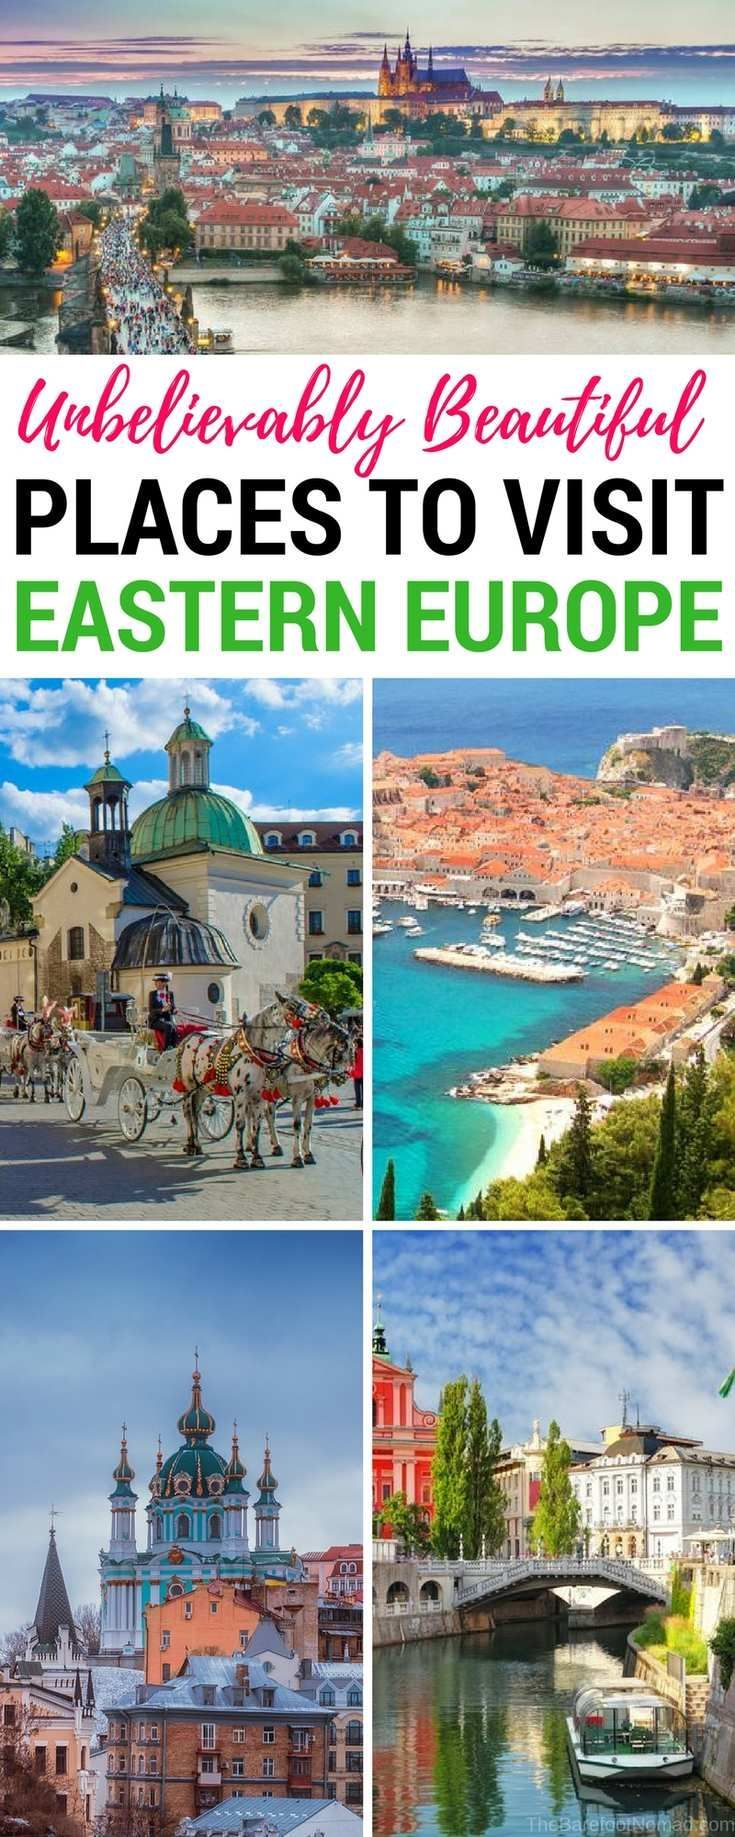 10 of the Most Beautiful Cities in Eastern Europe